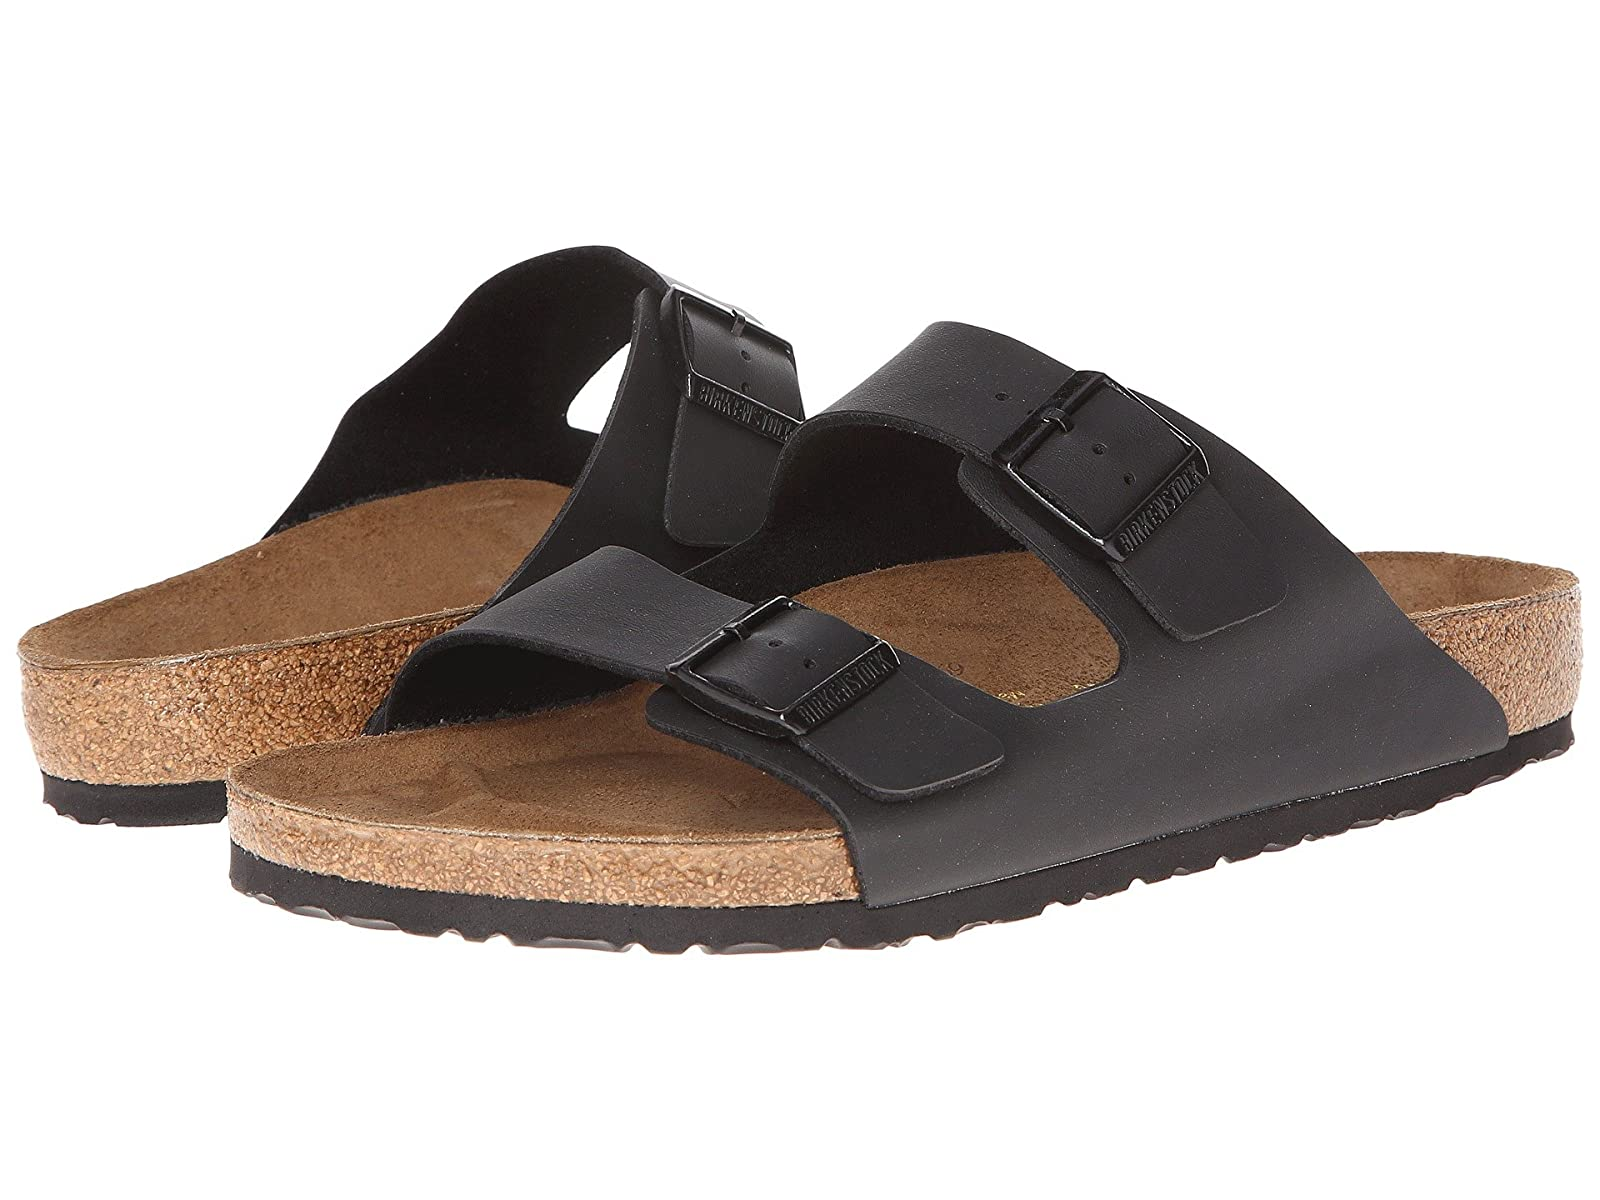 Birkenstock Arizona - Birko-Flor™Comfortable and distinctive shoes